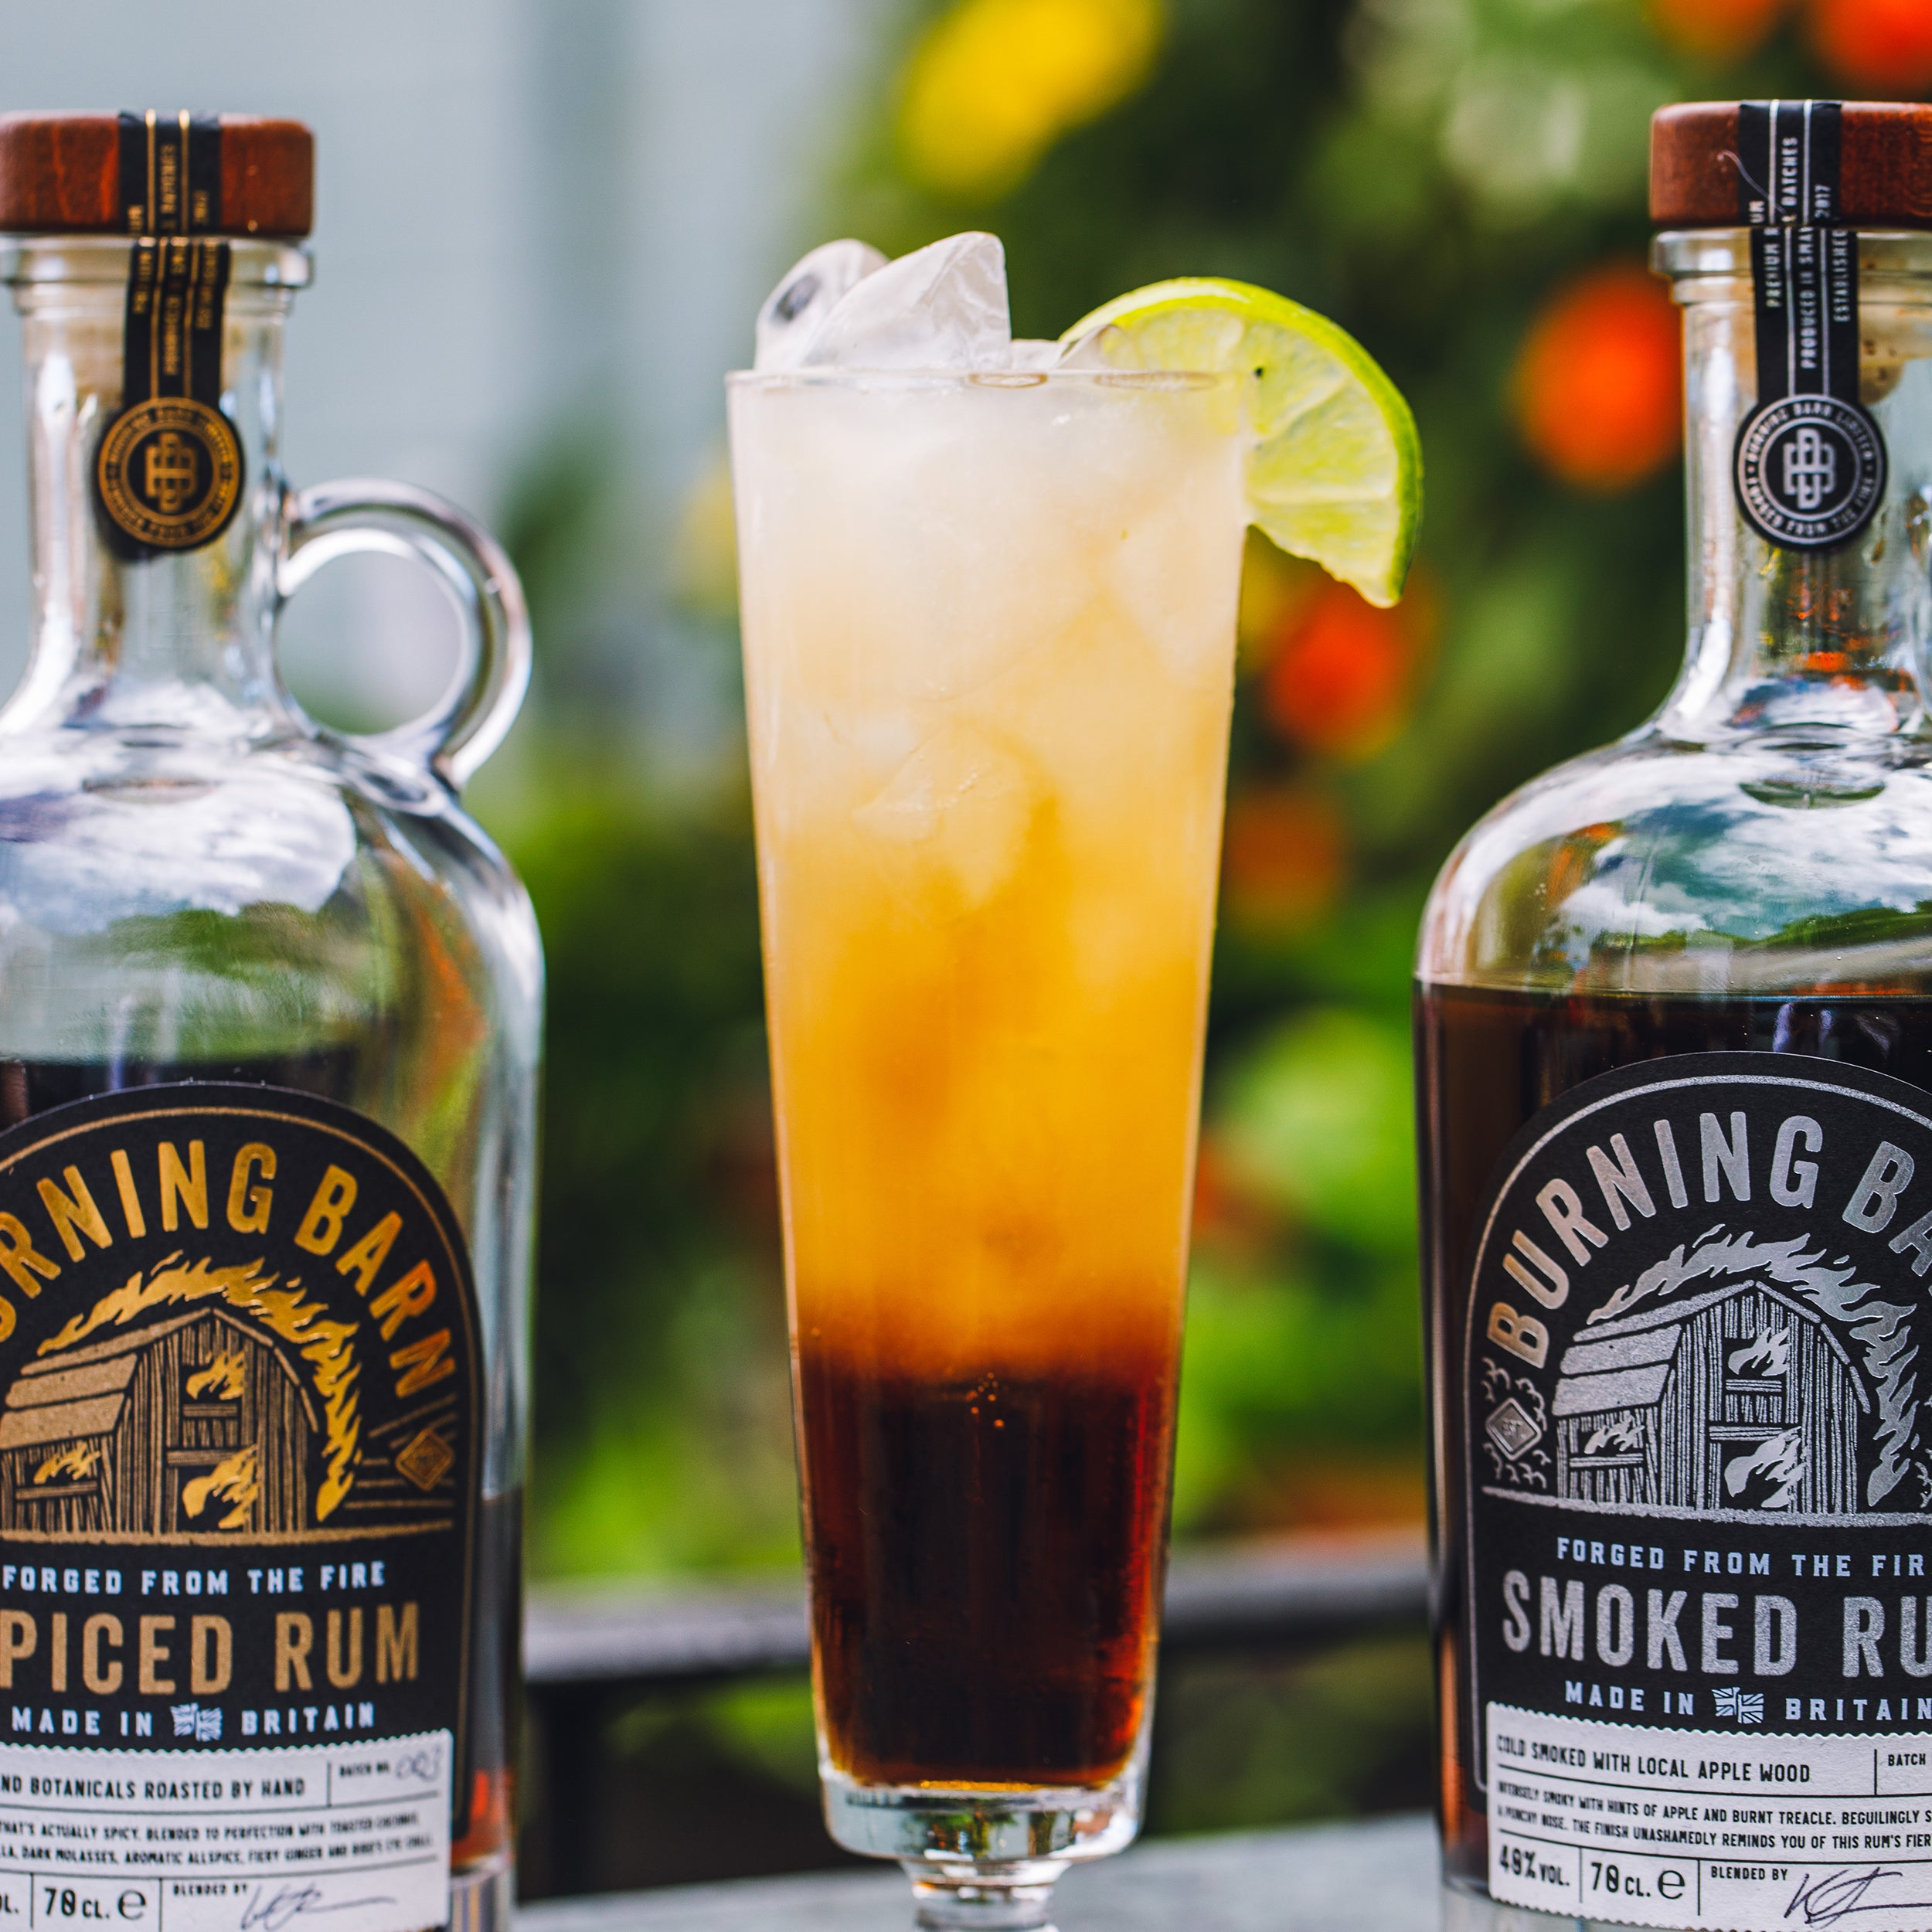 Burning Barn Iced Tea cocktail in tall glass, with rum bottles either side